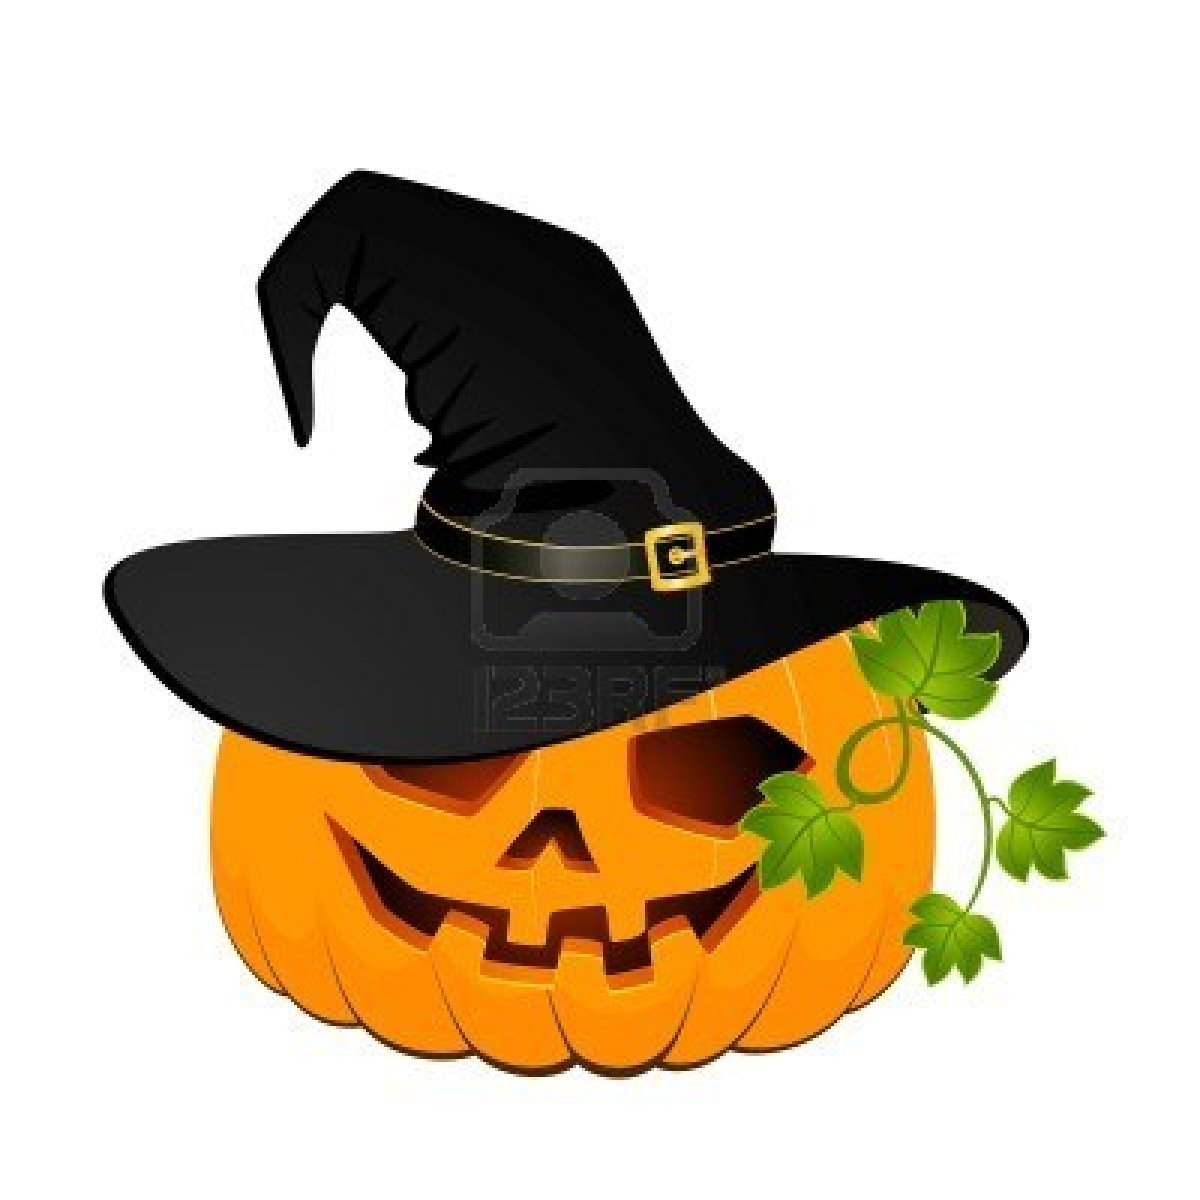 7149094-carved-face-of-pumpkin-in-hat-on-halloween